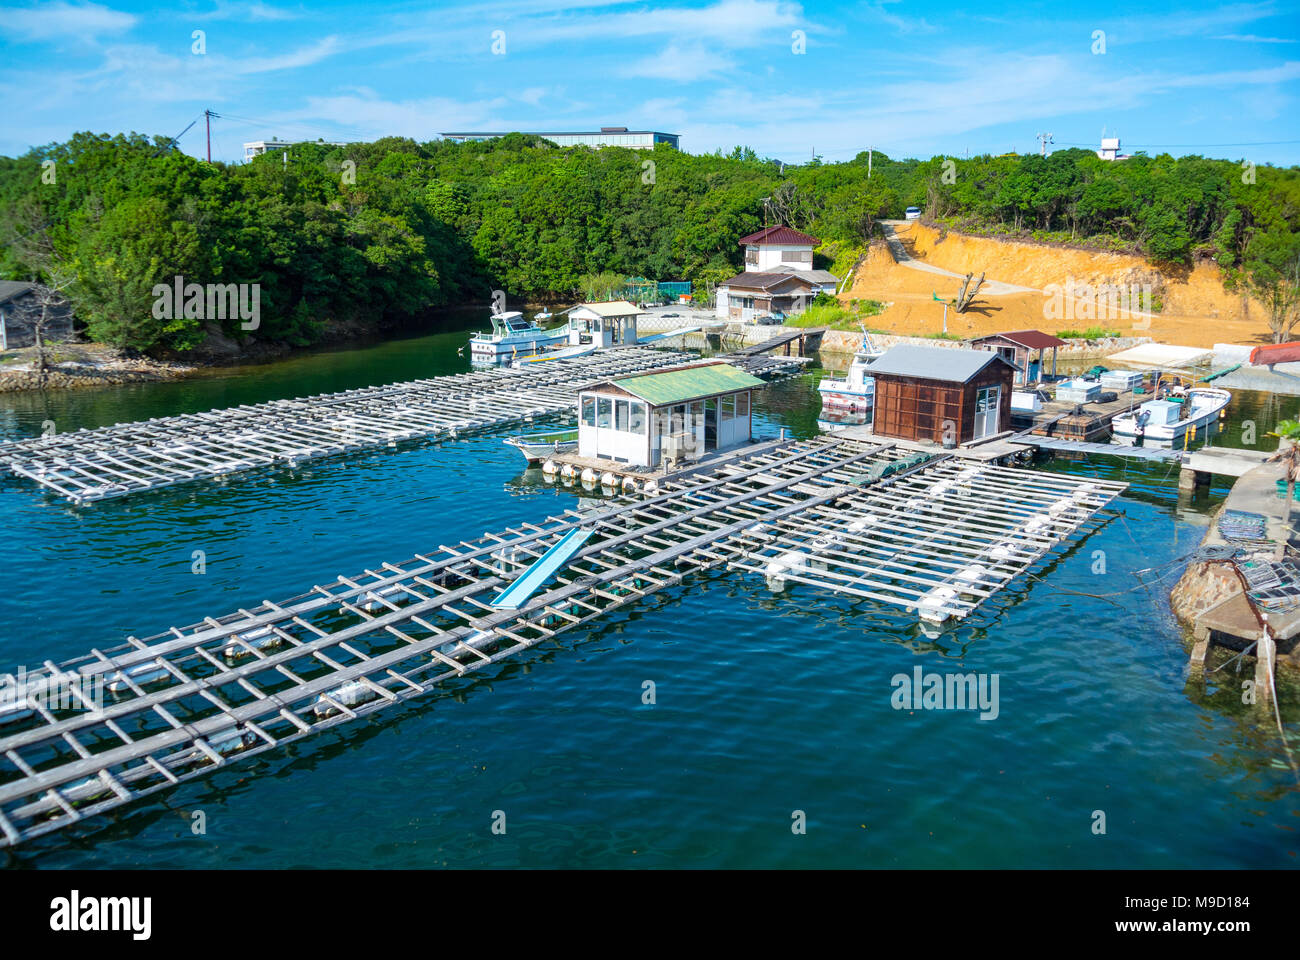 Pearl cultivation, Ago Bay, Shima City, Mie Prefecture,Japan Stock Photo